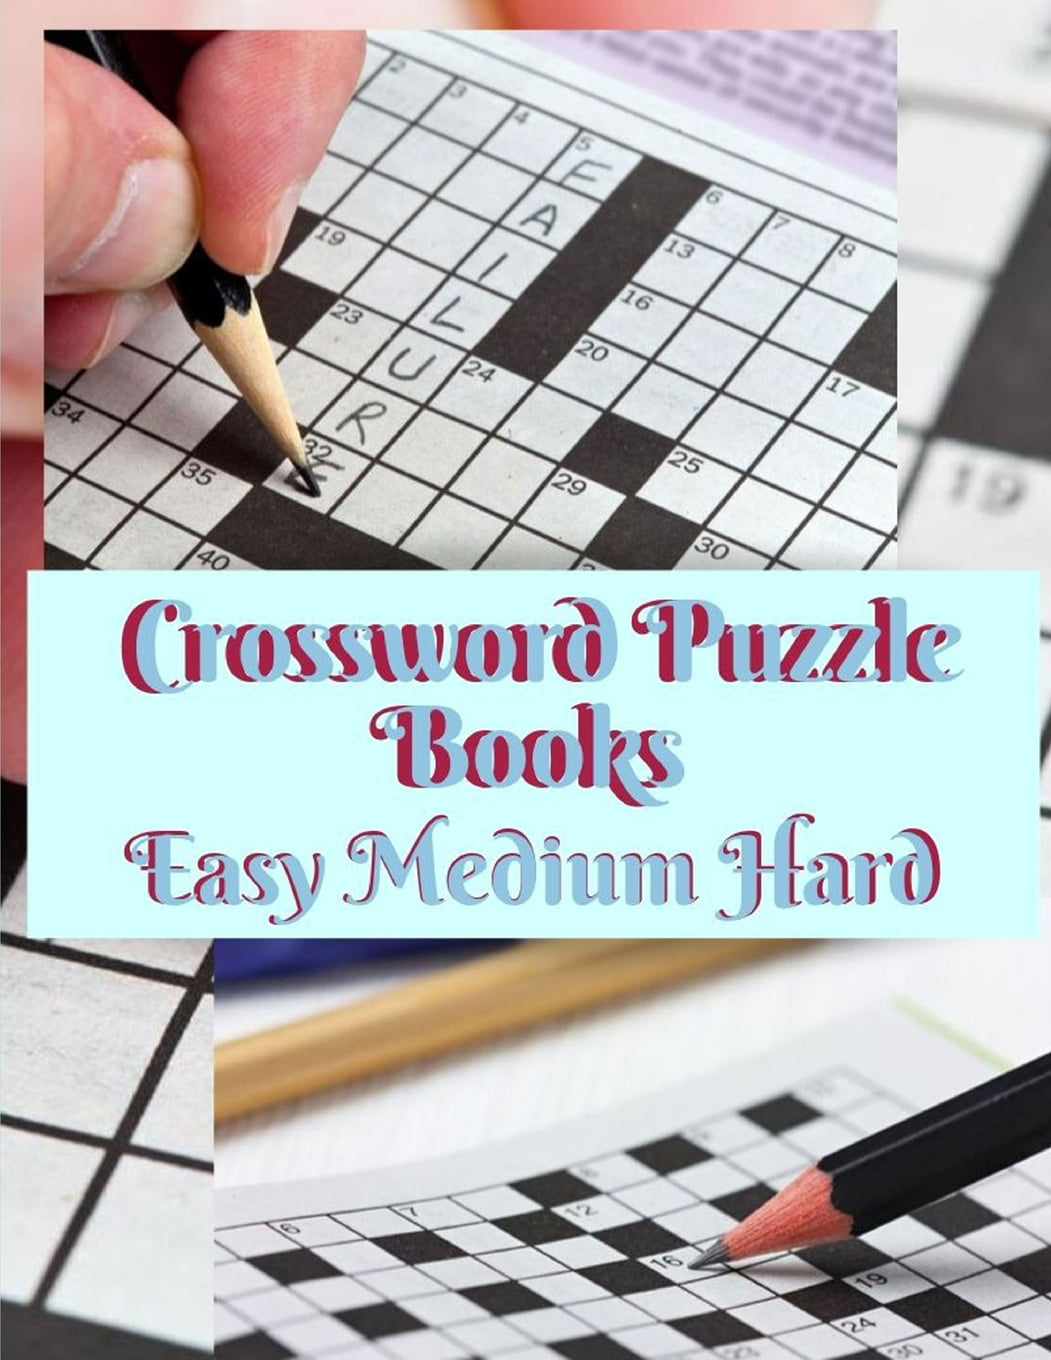 Crossword Puzzle Books Easy Medium Hard Usa Today Crossword Puzzle Books For Adults Easy Crosswords Puzzle Book Puzzles Trivia Challenges Specially Designed To Keep Your Brain Young Paperback Walmart Com